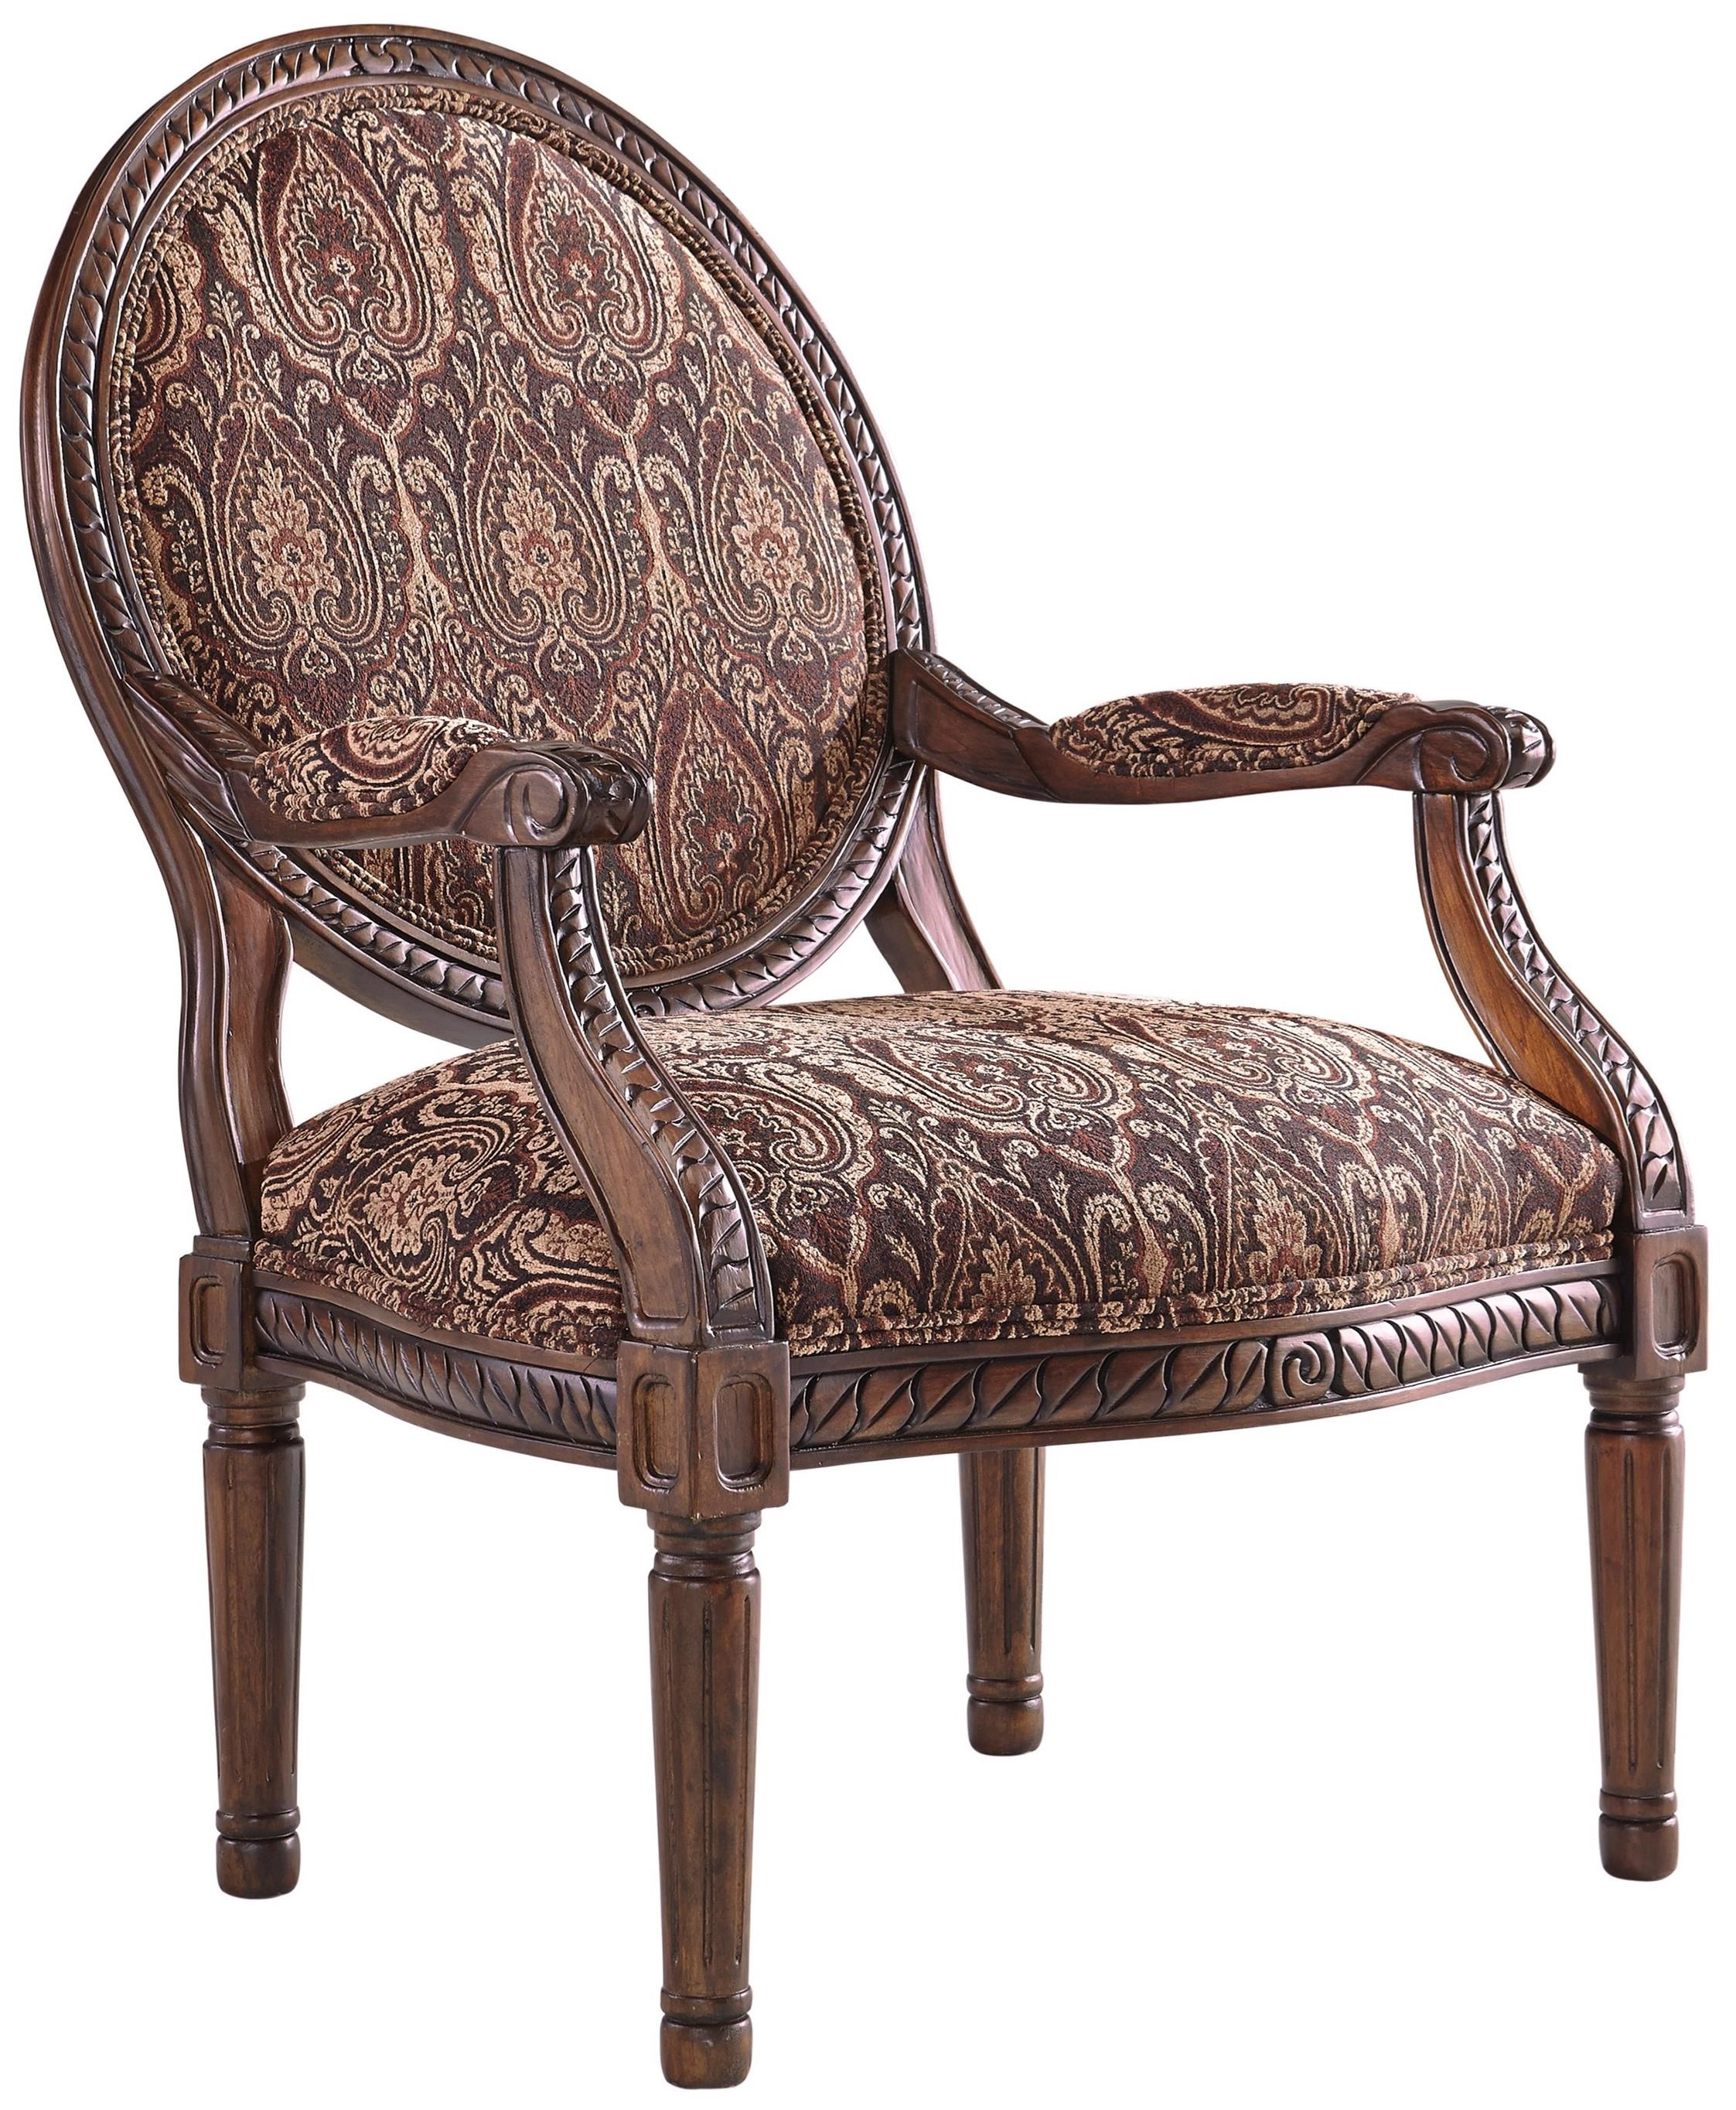 Signature Design by Ashley Vanceton Accent Chair - Item Number: 6740260